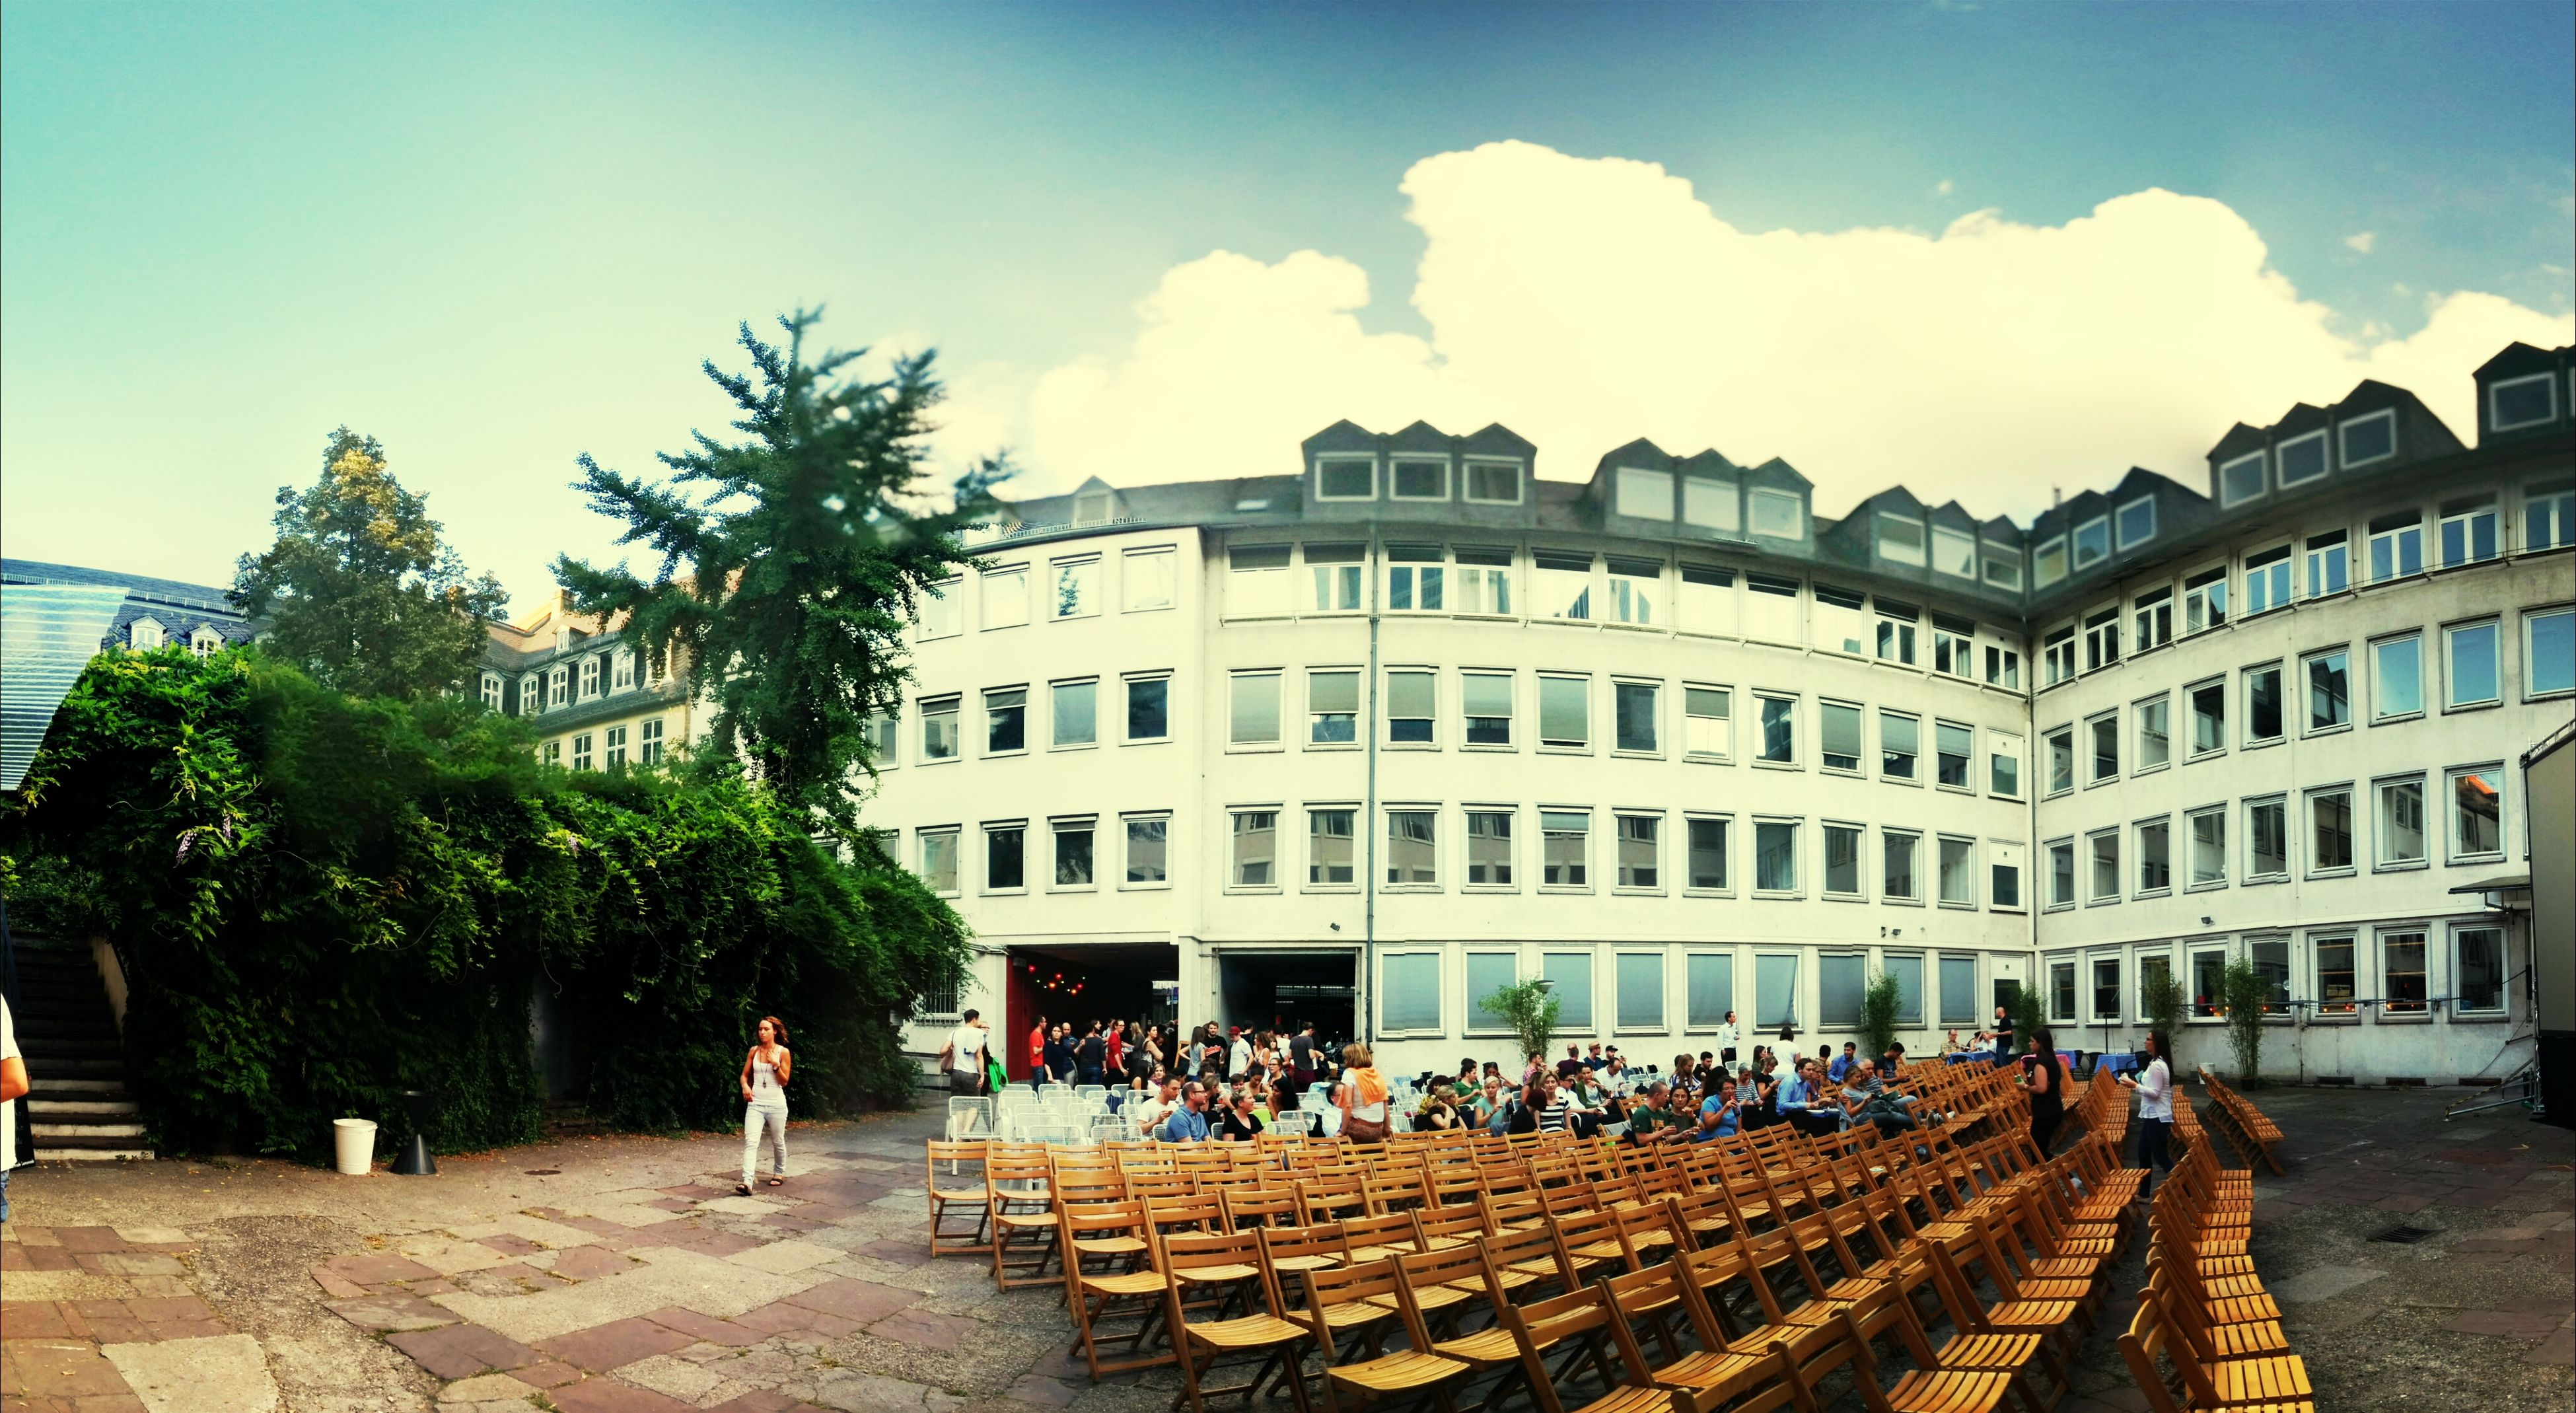 building exterior, architecture, built structure, sky, large group of people, person, city, men, cloud - sky, tree, lifestyles, city life, street, sunlight, cloud, day, outdoors, leisure activity, cobblestone